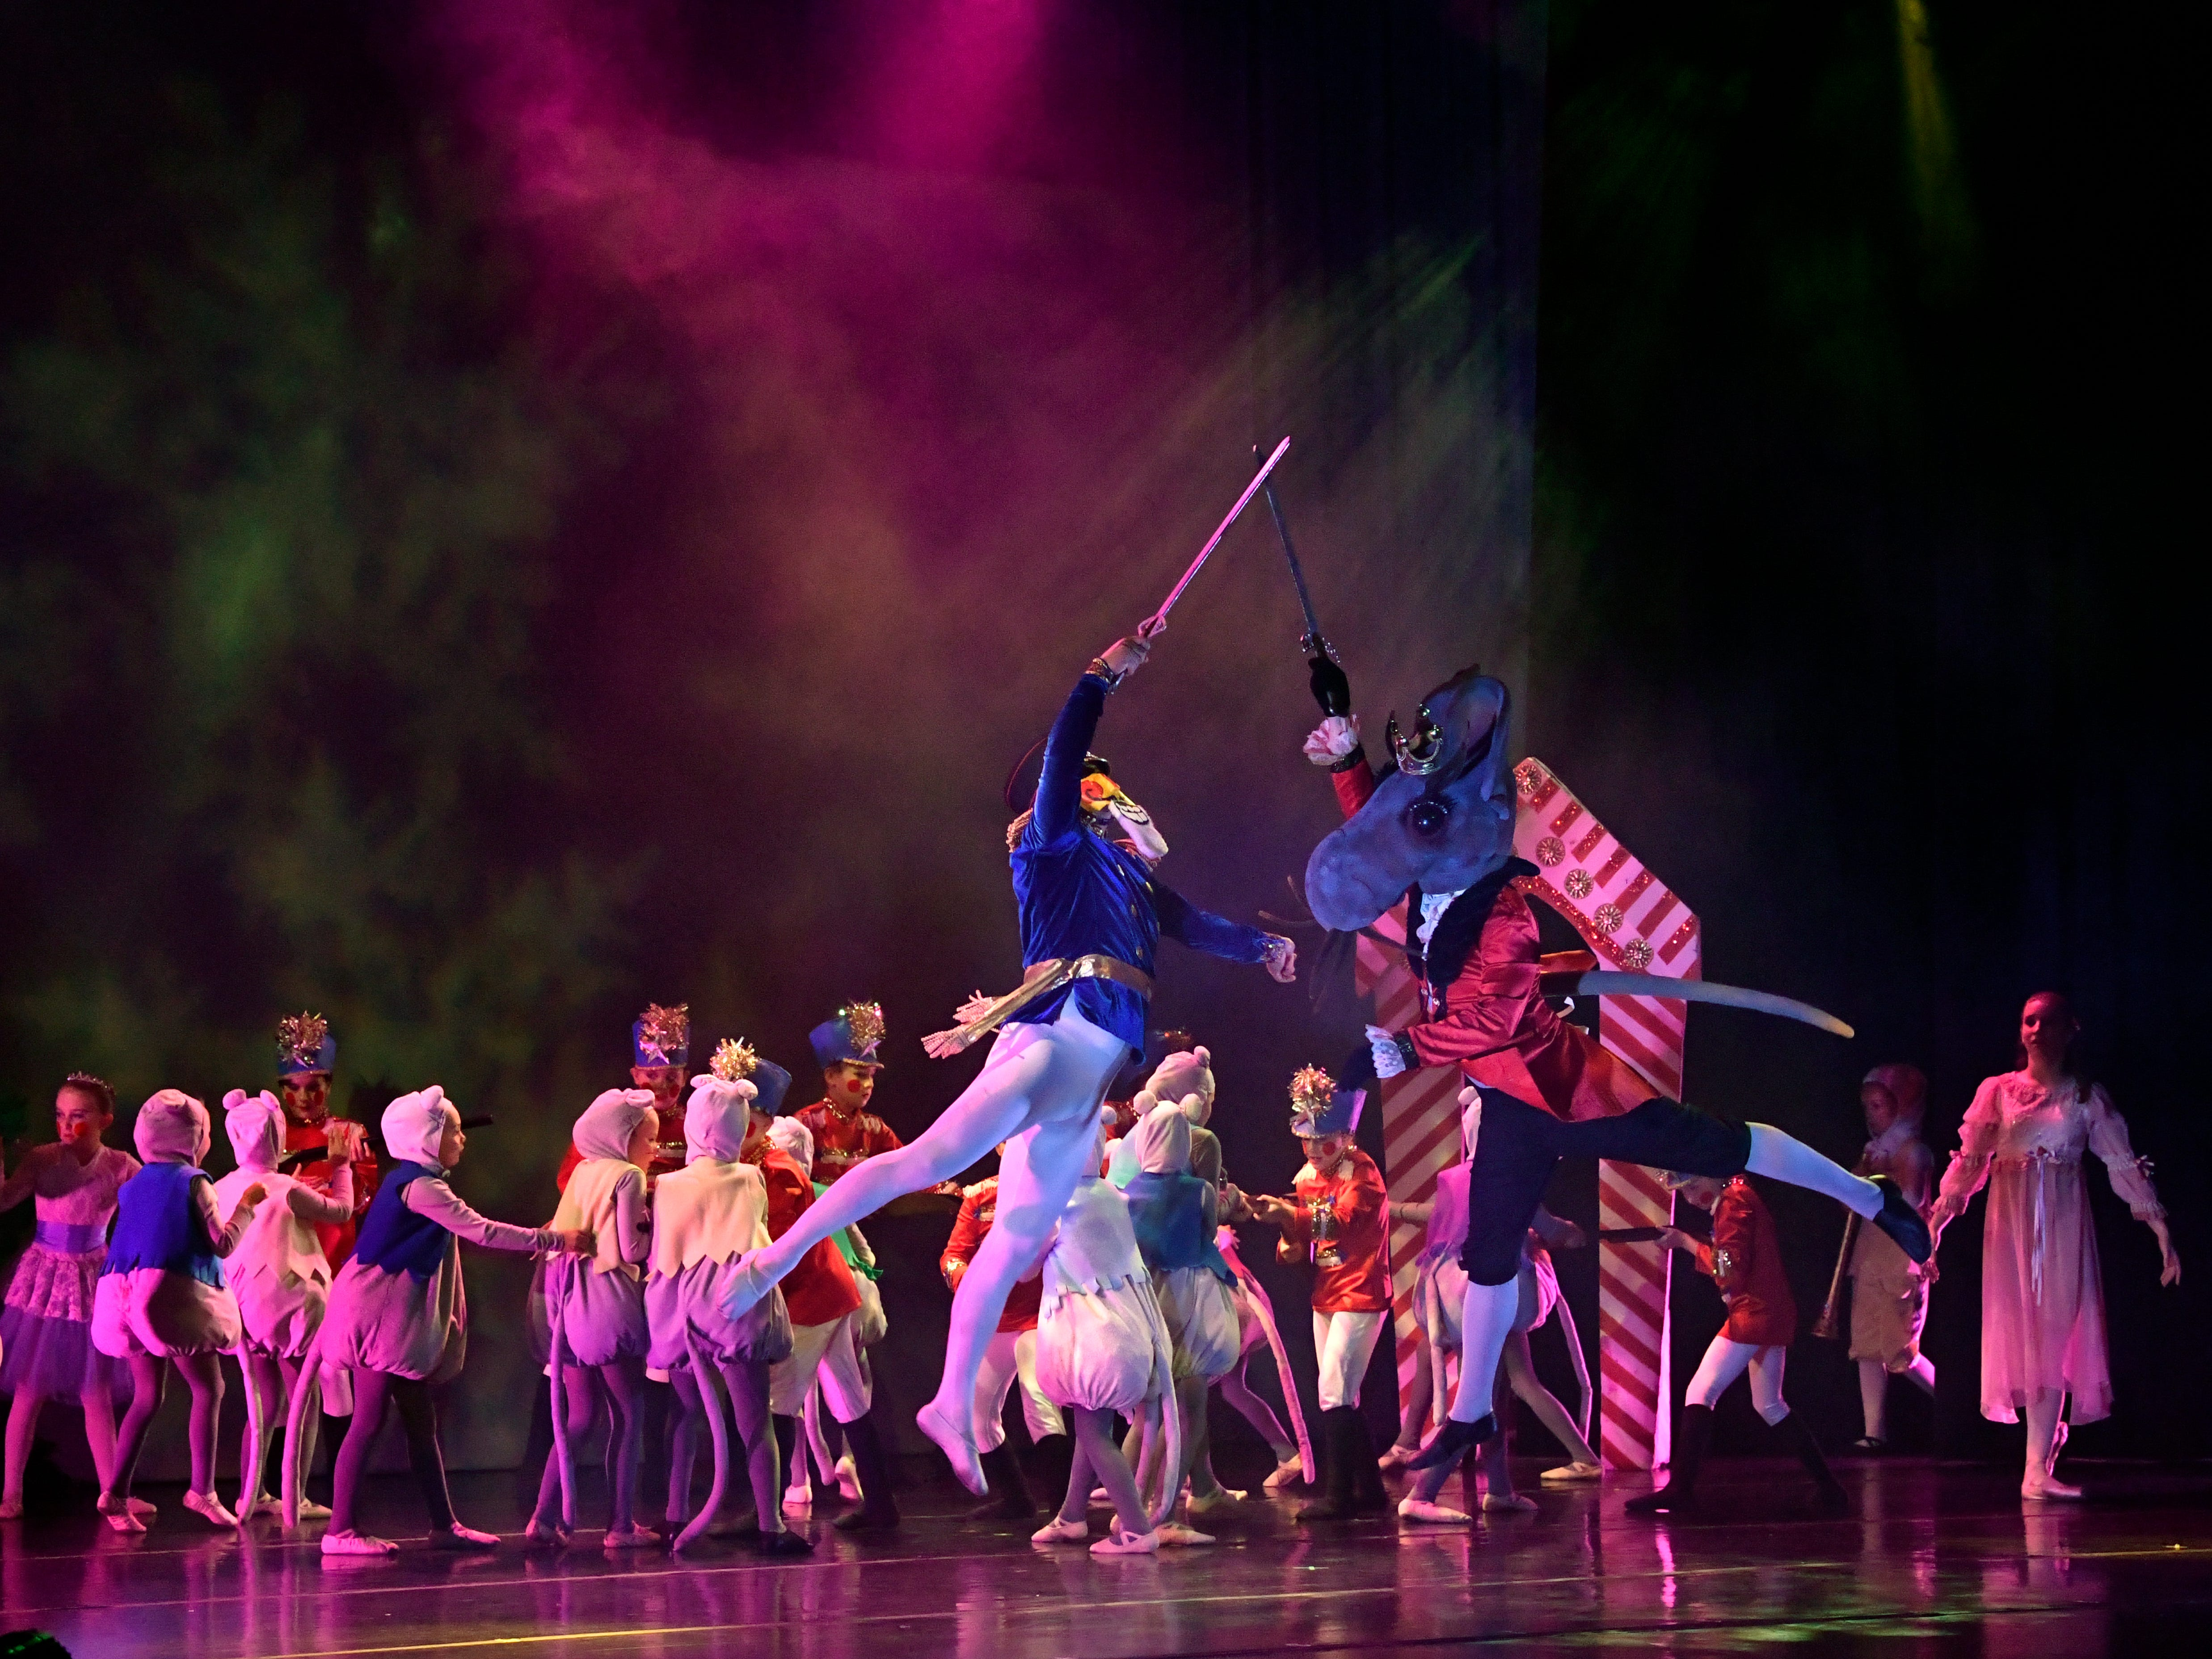 David Barocio as the Nutcracker Prince and Seth Willis portraying the Mouse King duel during the Battle Scene in Friday's performance of The Nutcracker for schoolchildren Nov. 16, 2018. This was the 31st year for the Abilene Ballet Theatre production, held at the Paramount Theatre.